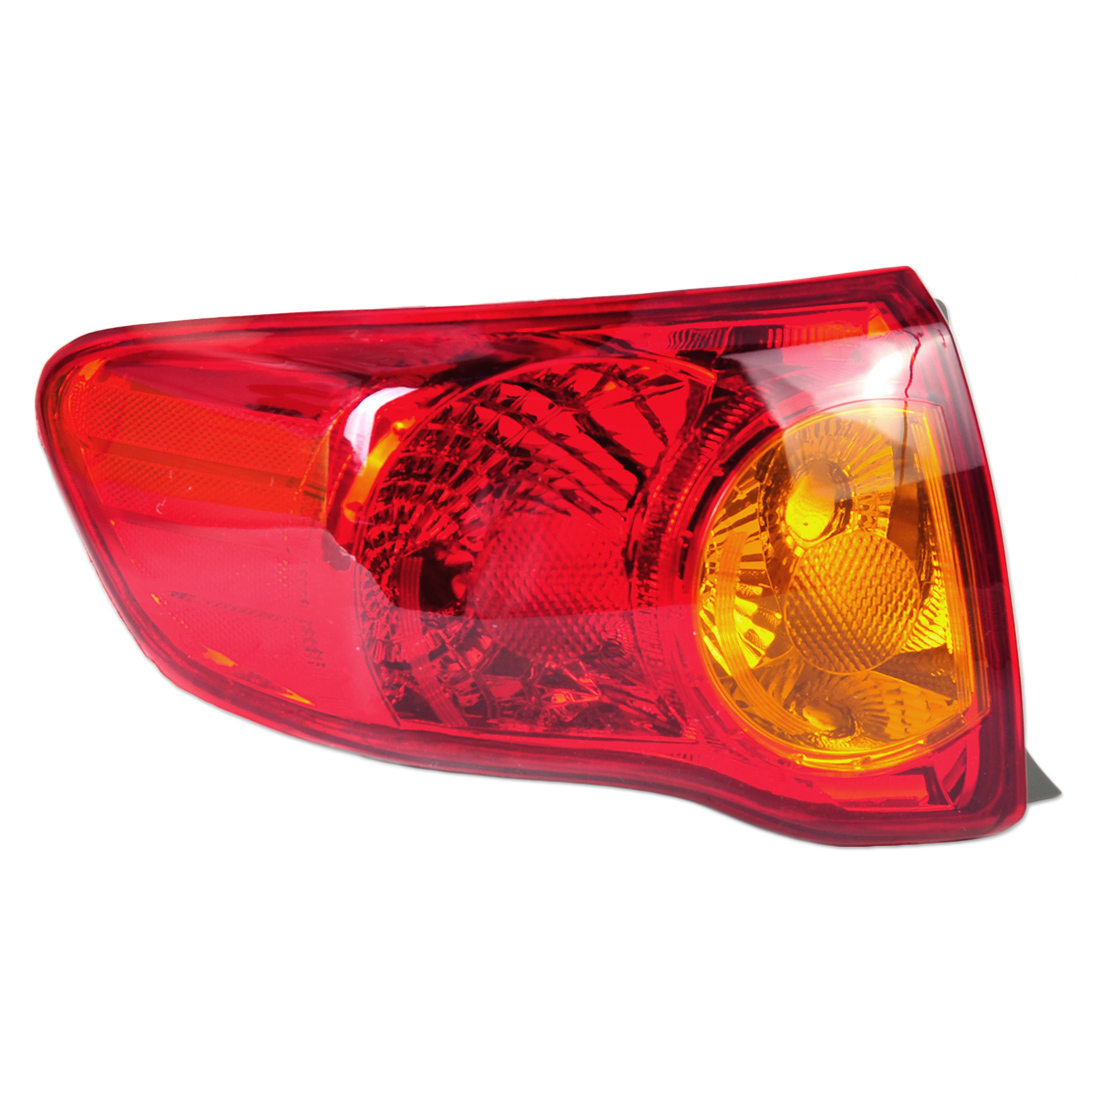 beler LHD Rear Left Outer Tail Light Taillamp Driver Side Brake Light fit for Toyota Corolla 2009 2010 TO2800175 166-50863L 1 pcs lh left side outer taillamp tail light rear lamp light for ford mondeo 2011 2012